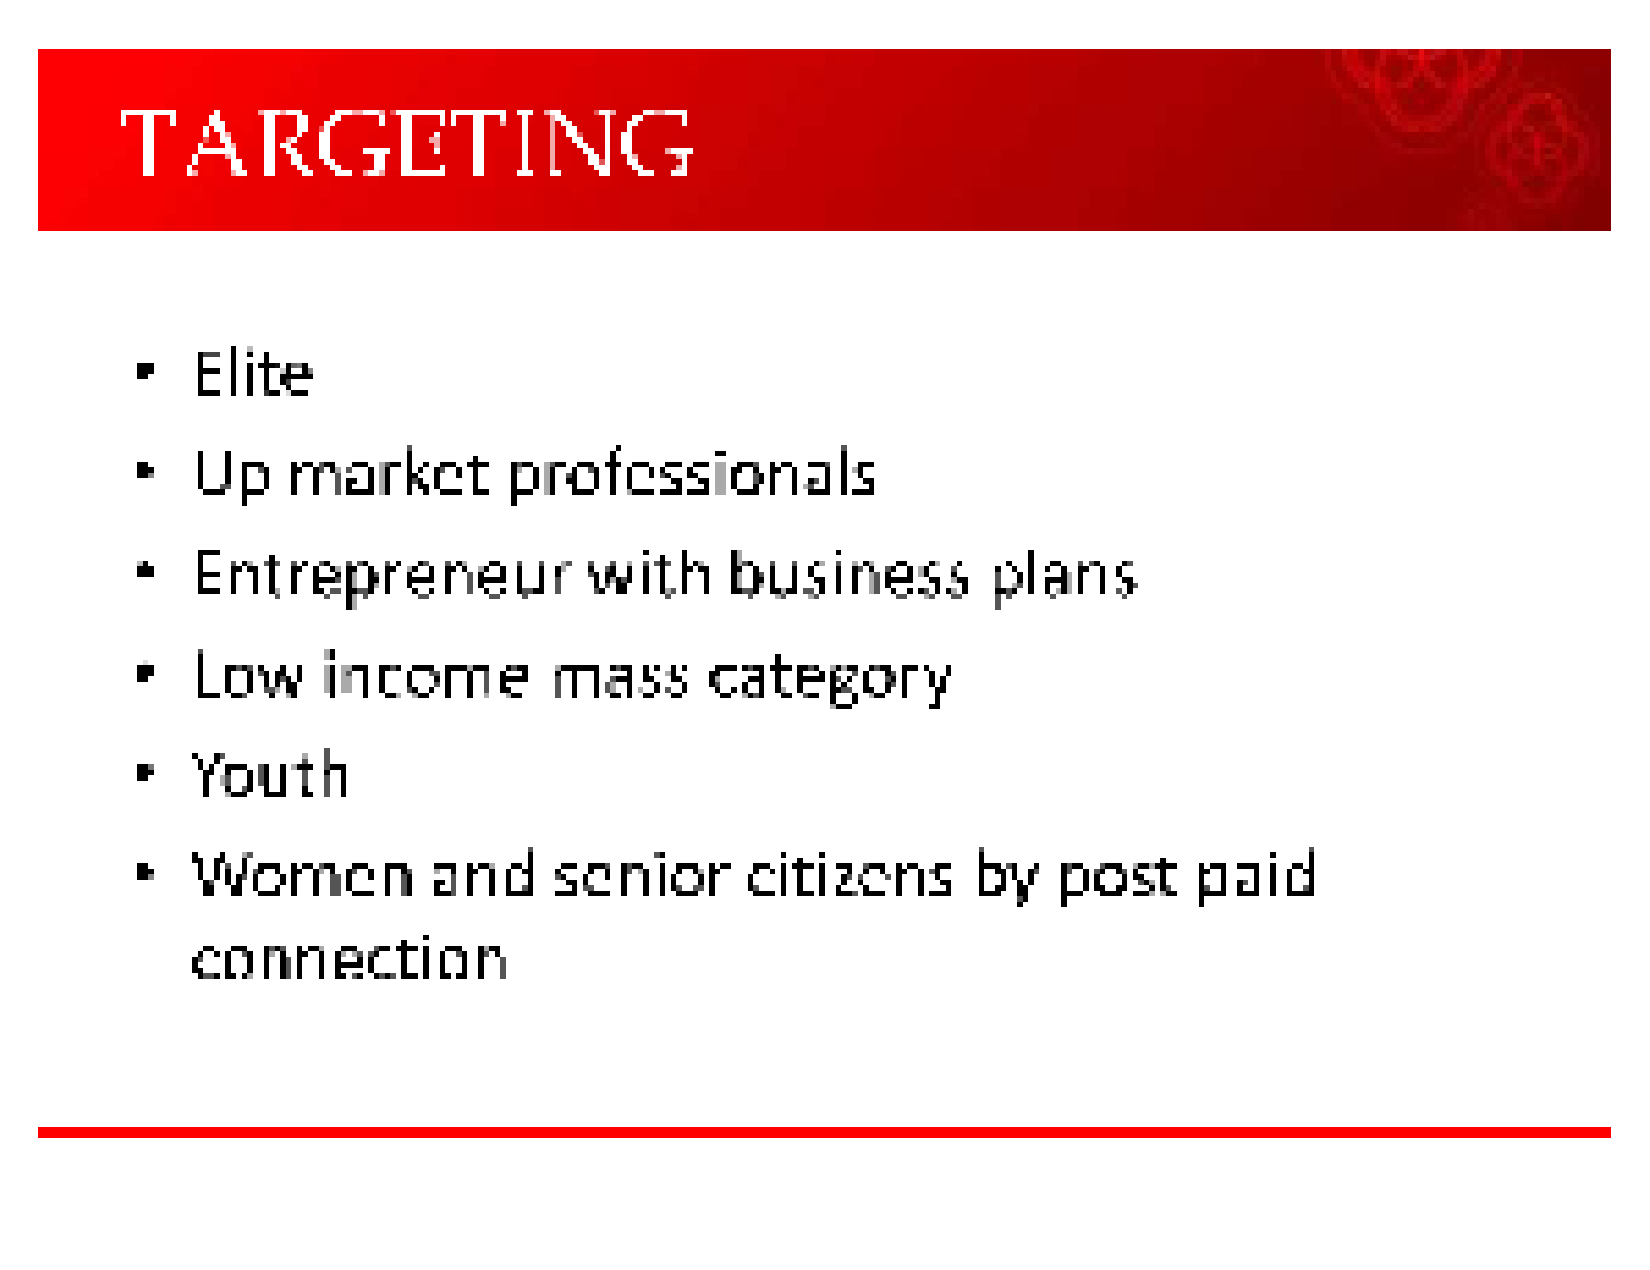 airtel marketing strategy essays Tigo (tigo cash) and airtel (airtel money) popularized the innovation and mtn has taken it over through its marketing and sales primary activity swot analysis the swot analysis is a framework used for scanning the internal and external environments of an organization for s trengths, w eaknesses, o pportunities and t hreats.